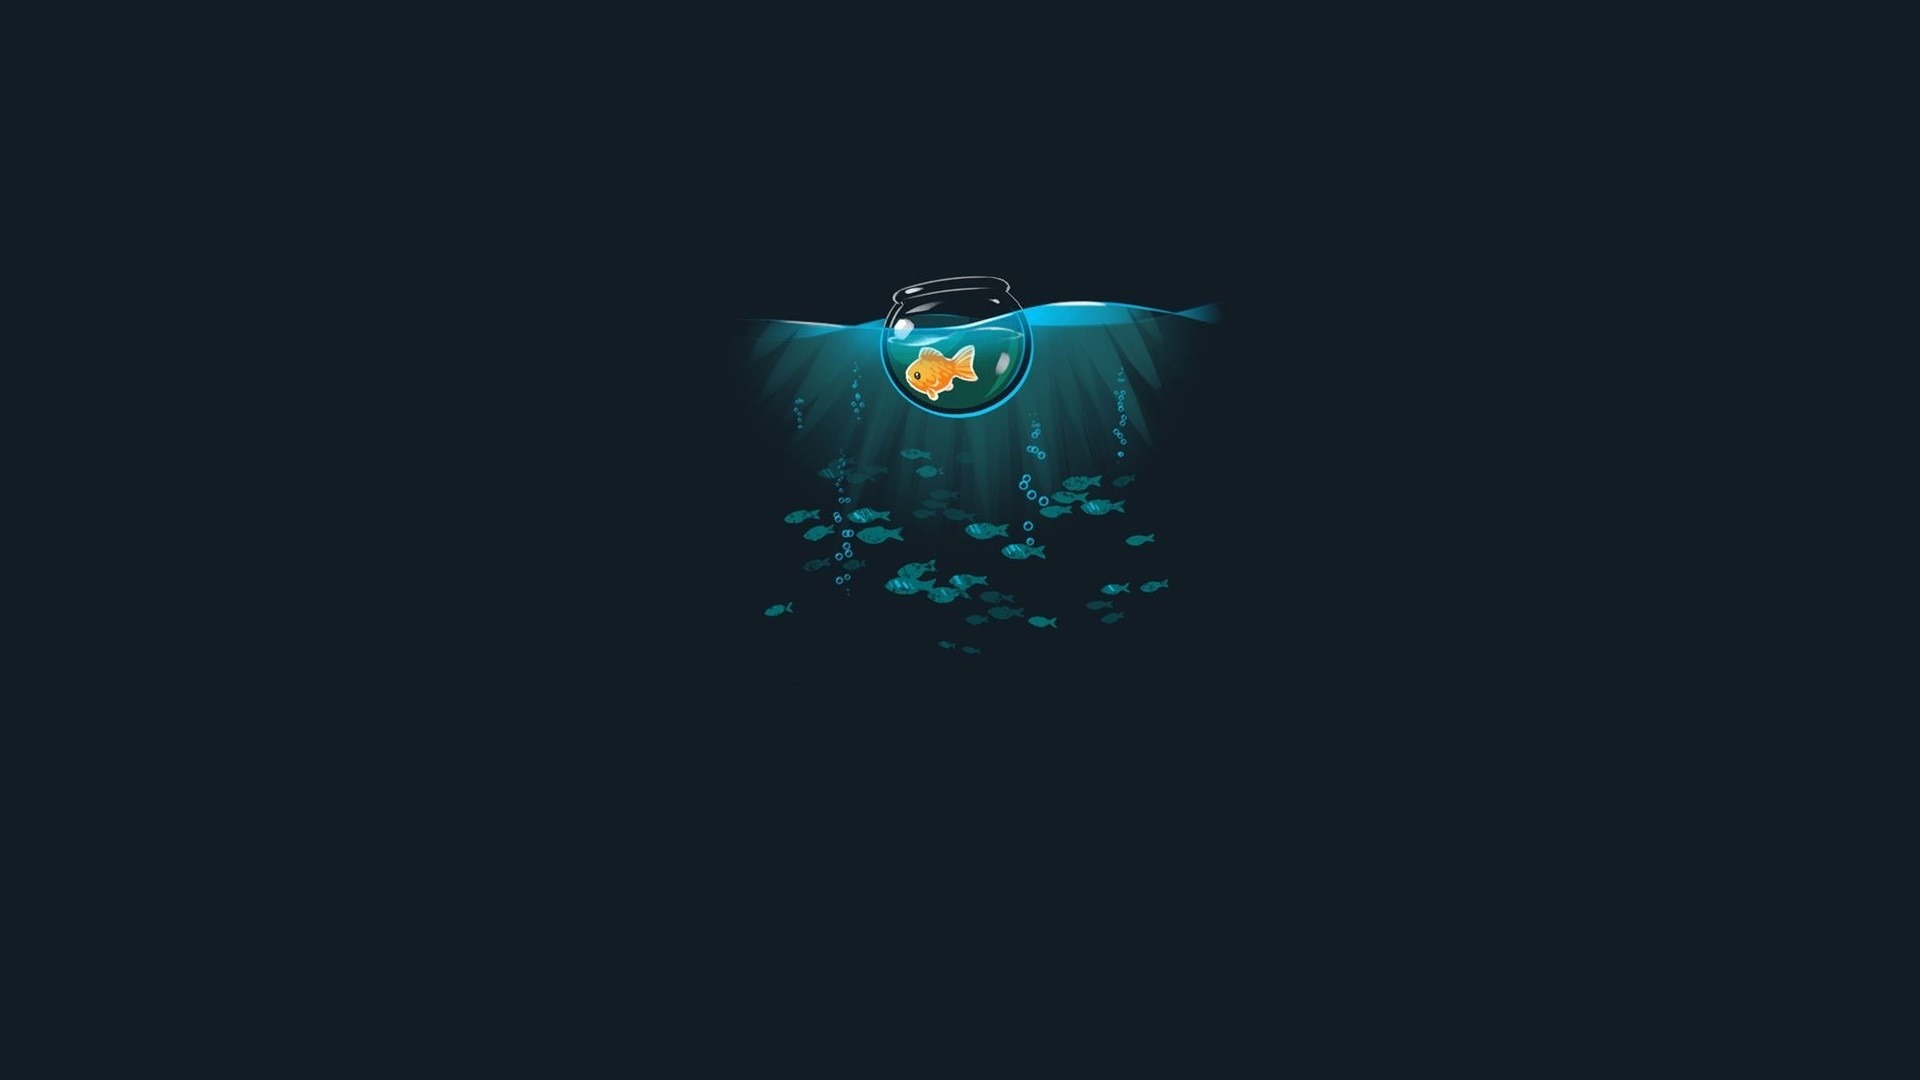 General 1920x1080 digital art dark humor simple background animals underwater humor